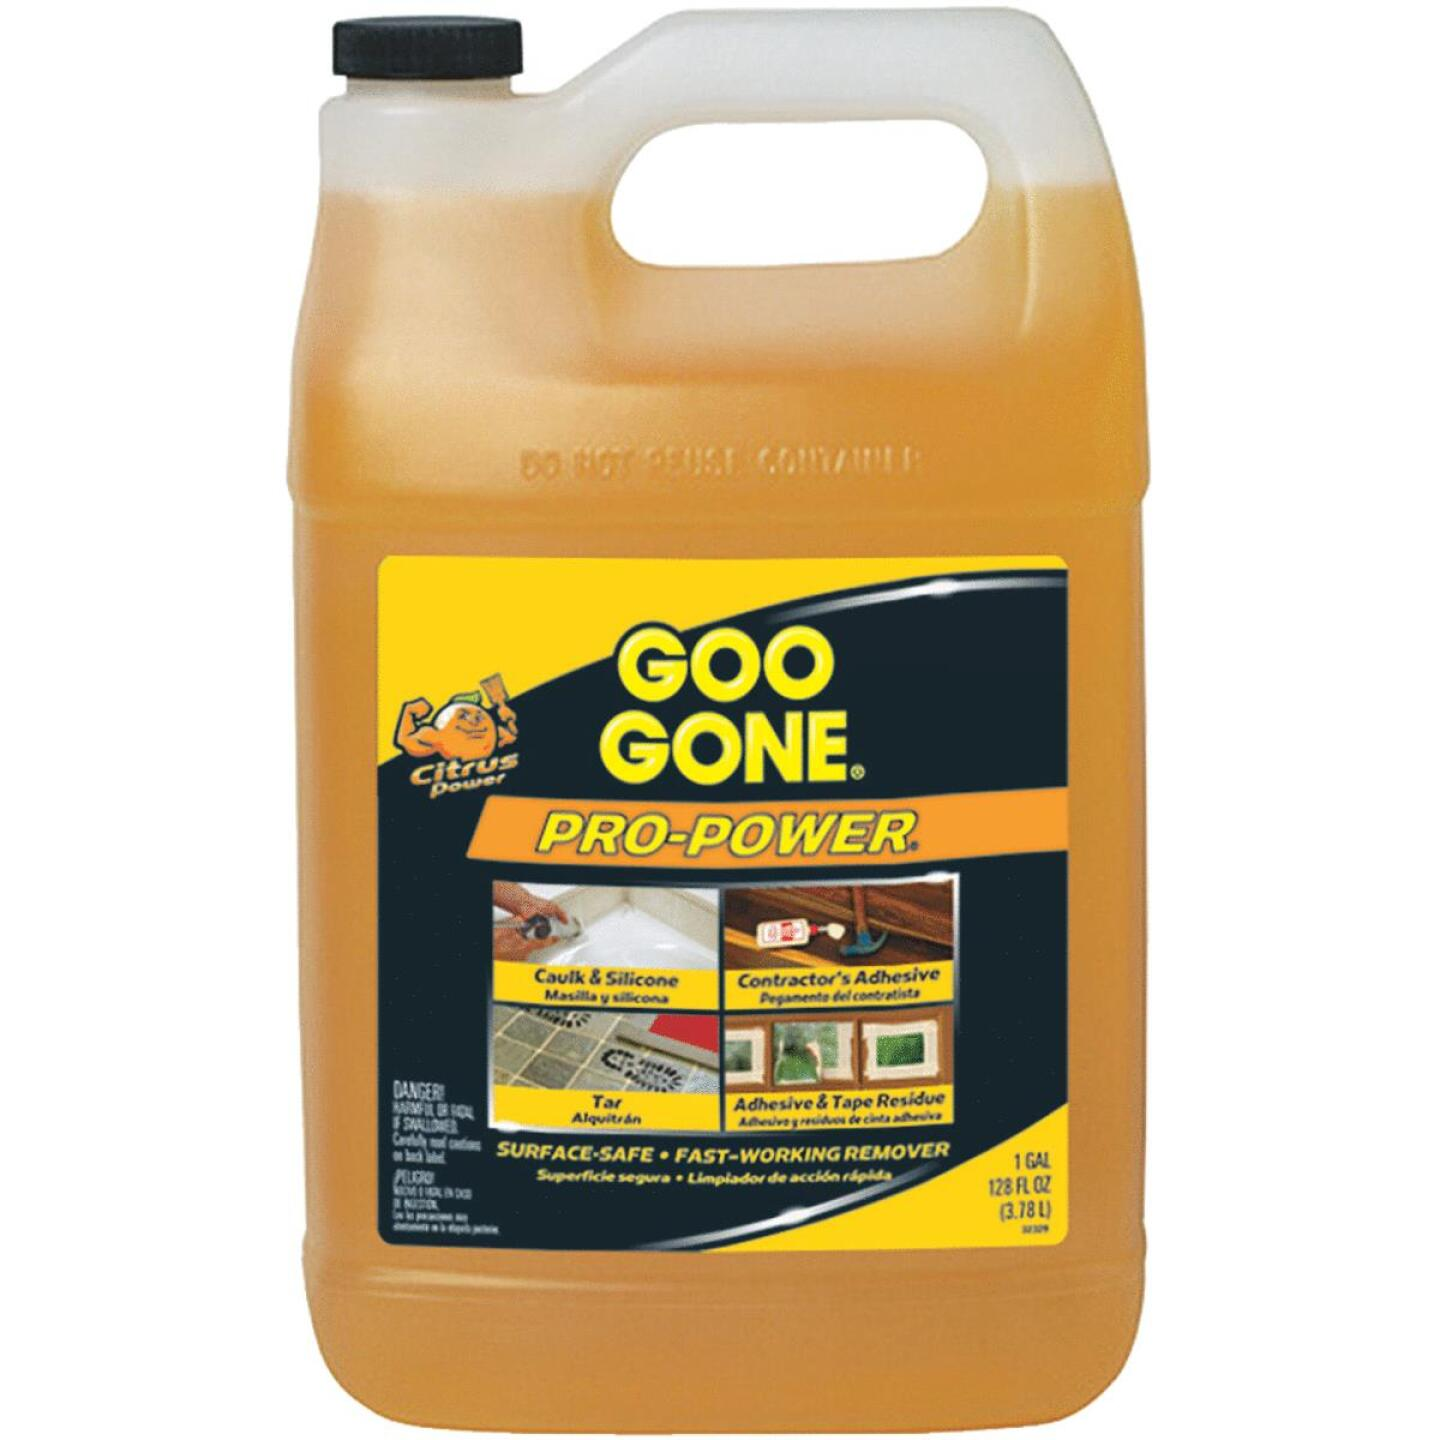 Goo Gone 1 Gal. Pro-Power Adhesive Remover Image 17